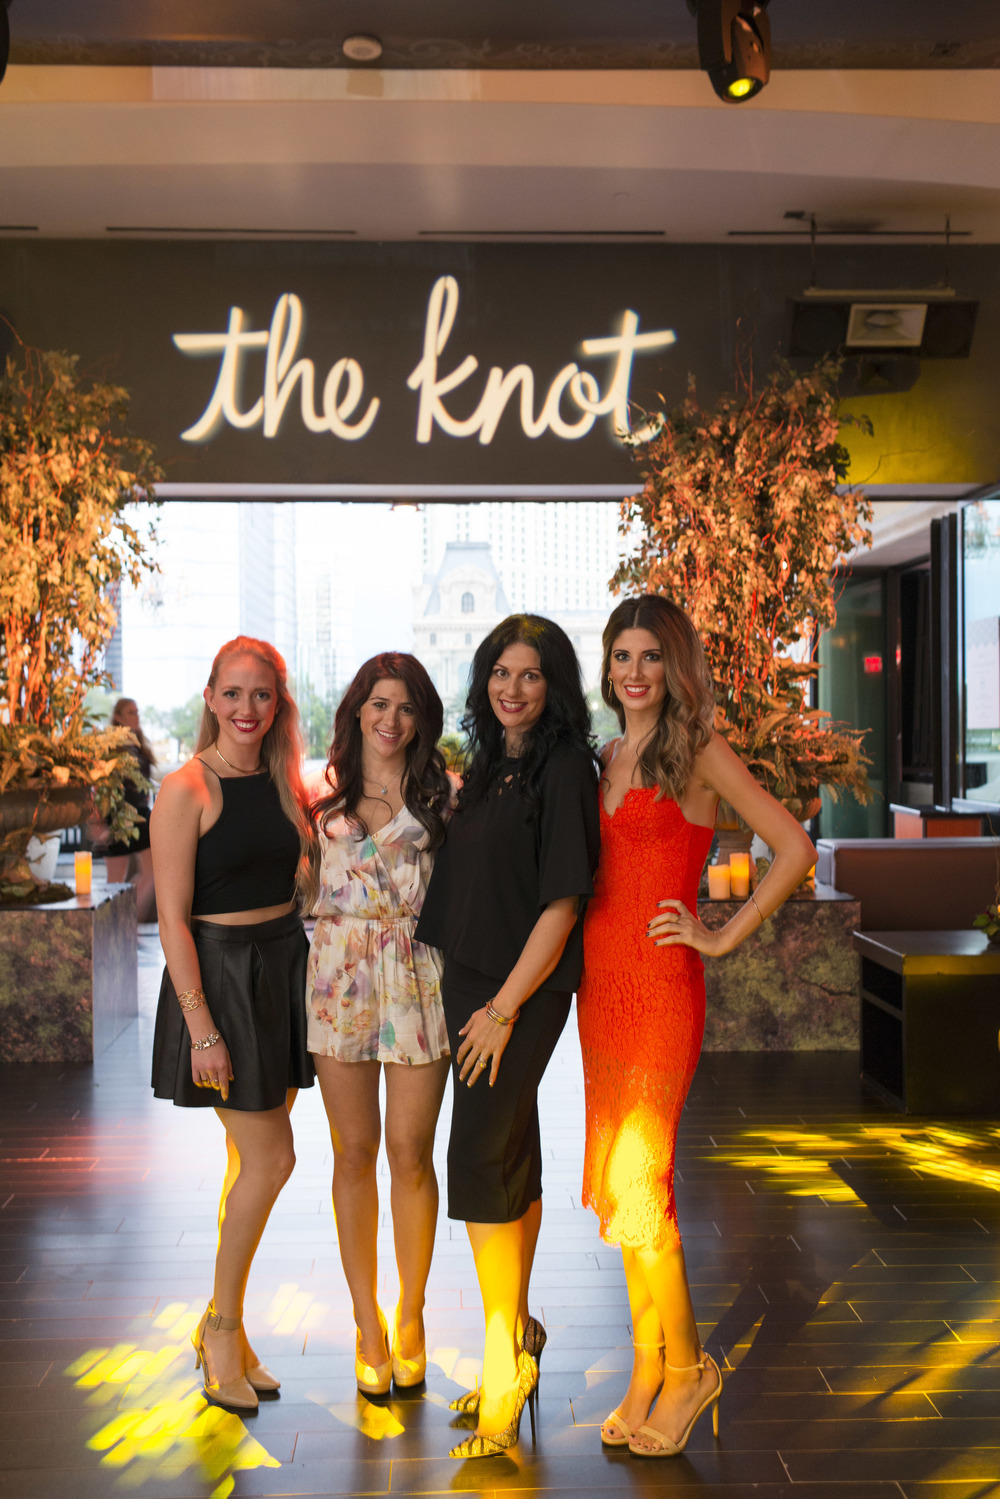 Las Vegas Wedding Planner and Event Designer Andrea Eppolito with the Event Team from The Knot.  Andrea was hired by The Knot the produce #TheKnotRocksWMBA2015.  Photo by Altf Photography.